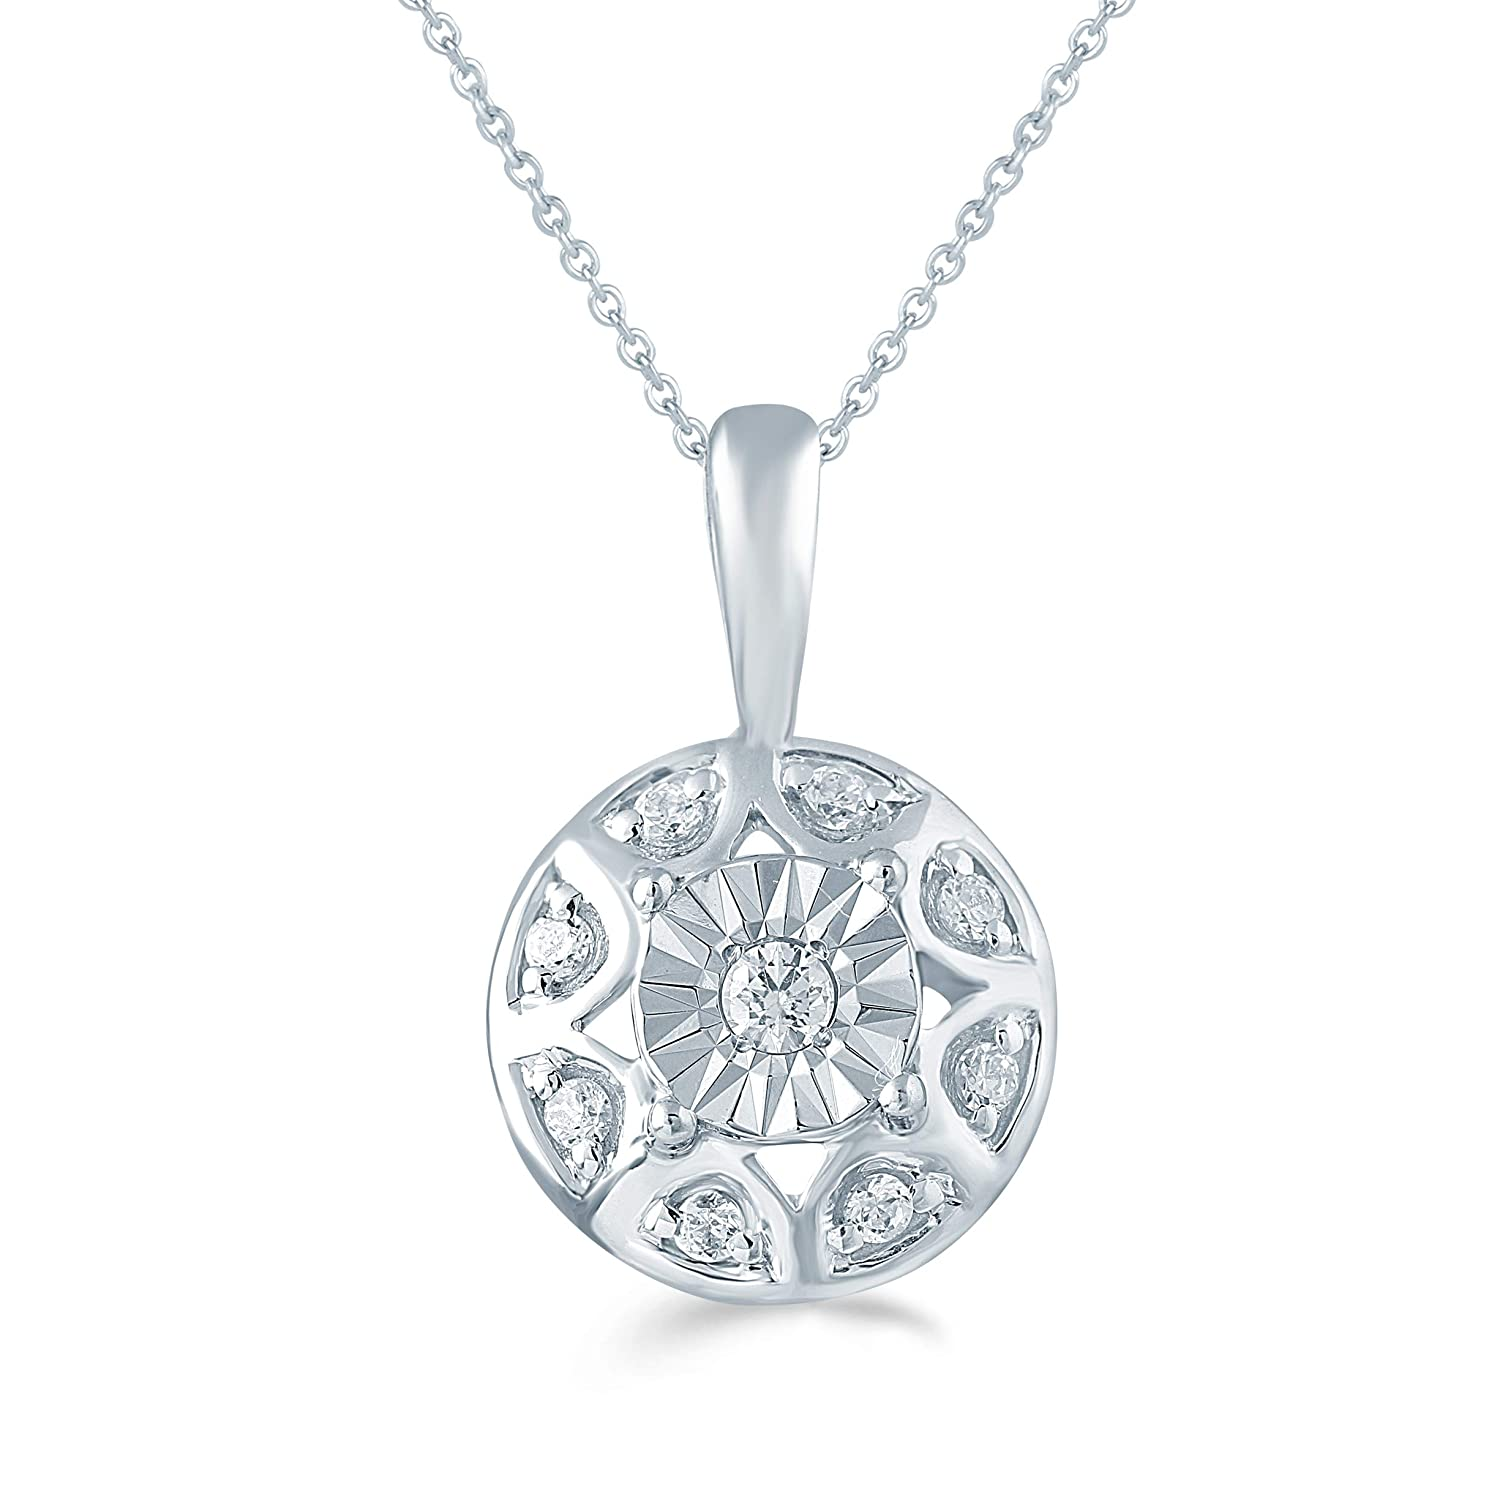 Fifth and Fine 1//10ct tw Diamond Round Cluster Fashion Pendant in Sterling Silver with 18 Cable Chain